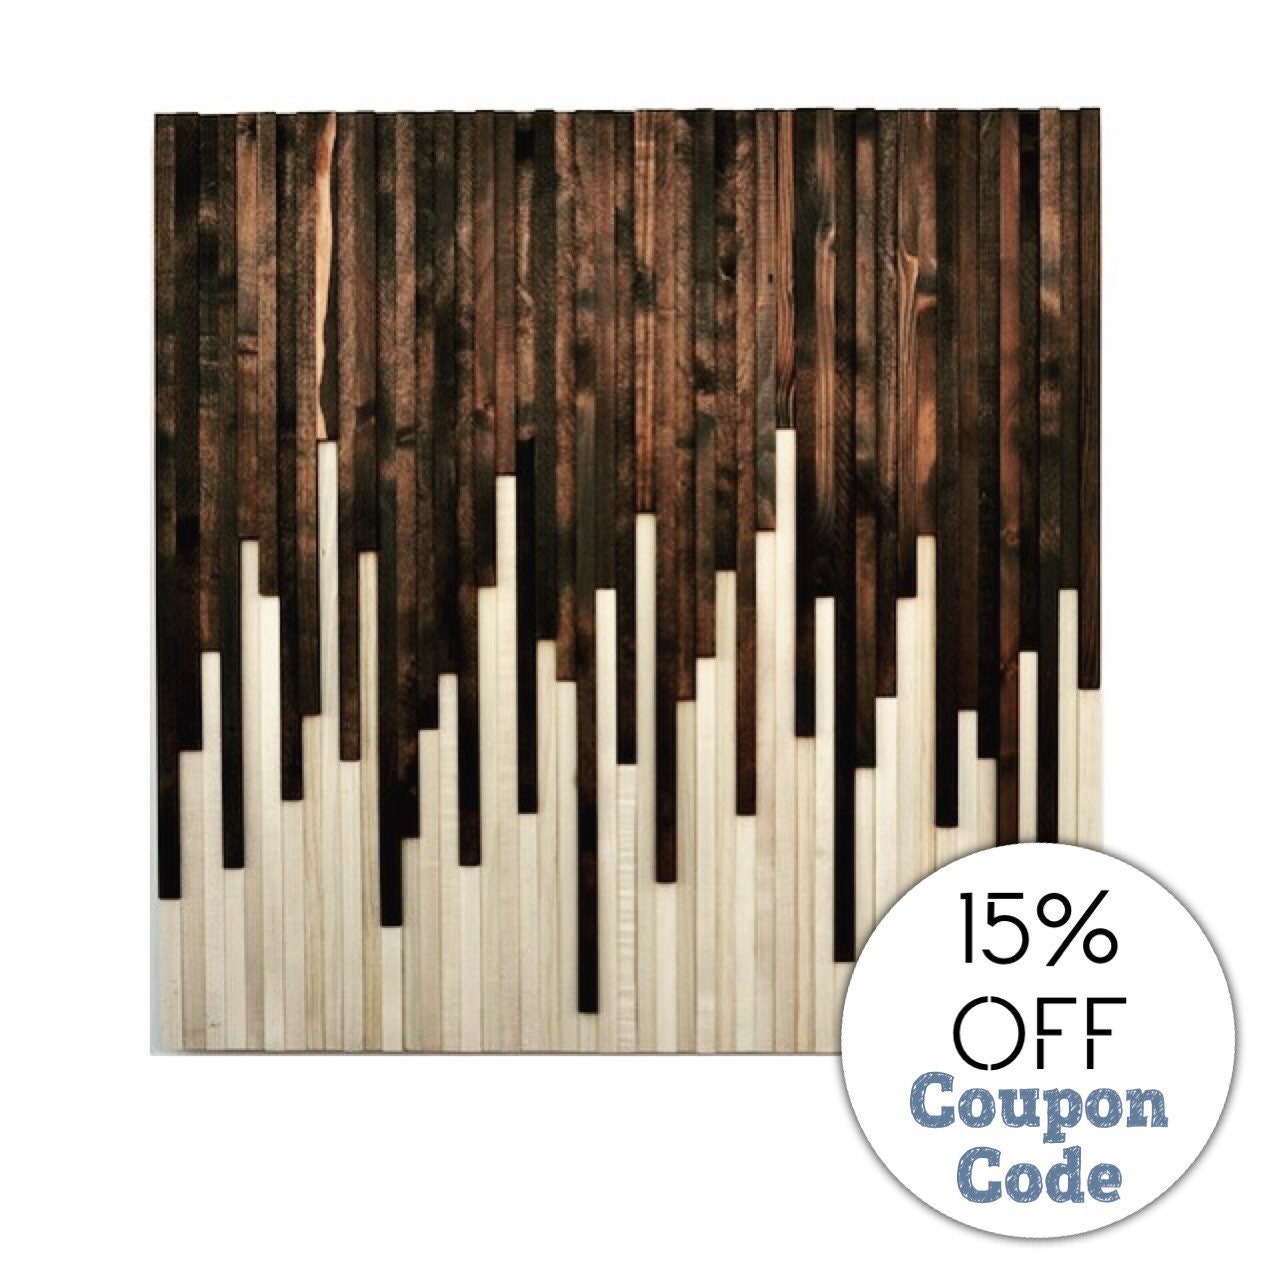 sheds now coupon code